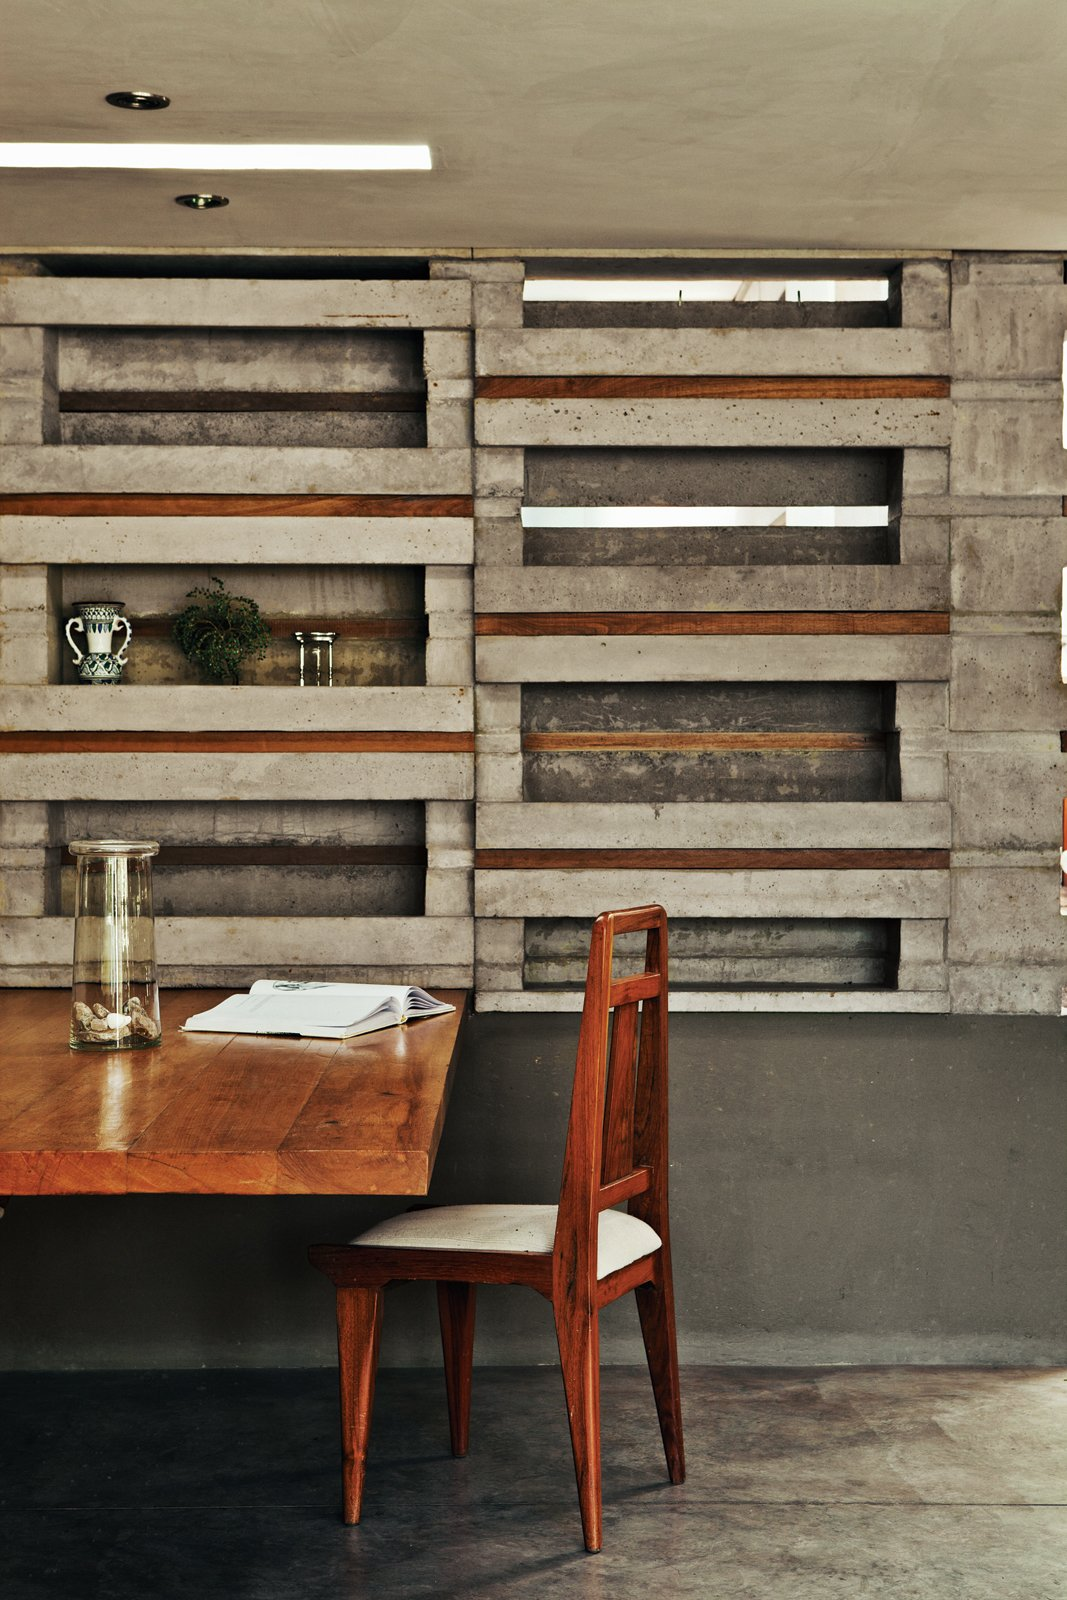 """""""With this flowerpot form we saw an opportunity to do everything using only a single piece of concrete,"""" says Sáez. """"It'sa simple, direct form of architecture.""""  A cantilevered slab of Colorado wood, secured in the gap beneath a concrete block, serves as a dining table. Pasternak paired this with a vintage chair made of rare Caoba wood. To fill other gaps between blocks, the architects alternated strips of wood with strips of Plexiglas that let in light from the adjacent kitchen.  Photo 3 of 10 in An Innovative Modular Building System in Ecuador"""